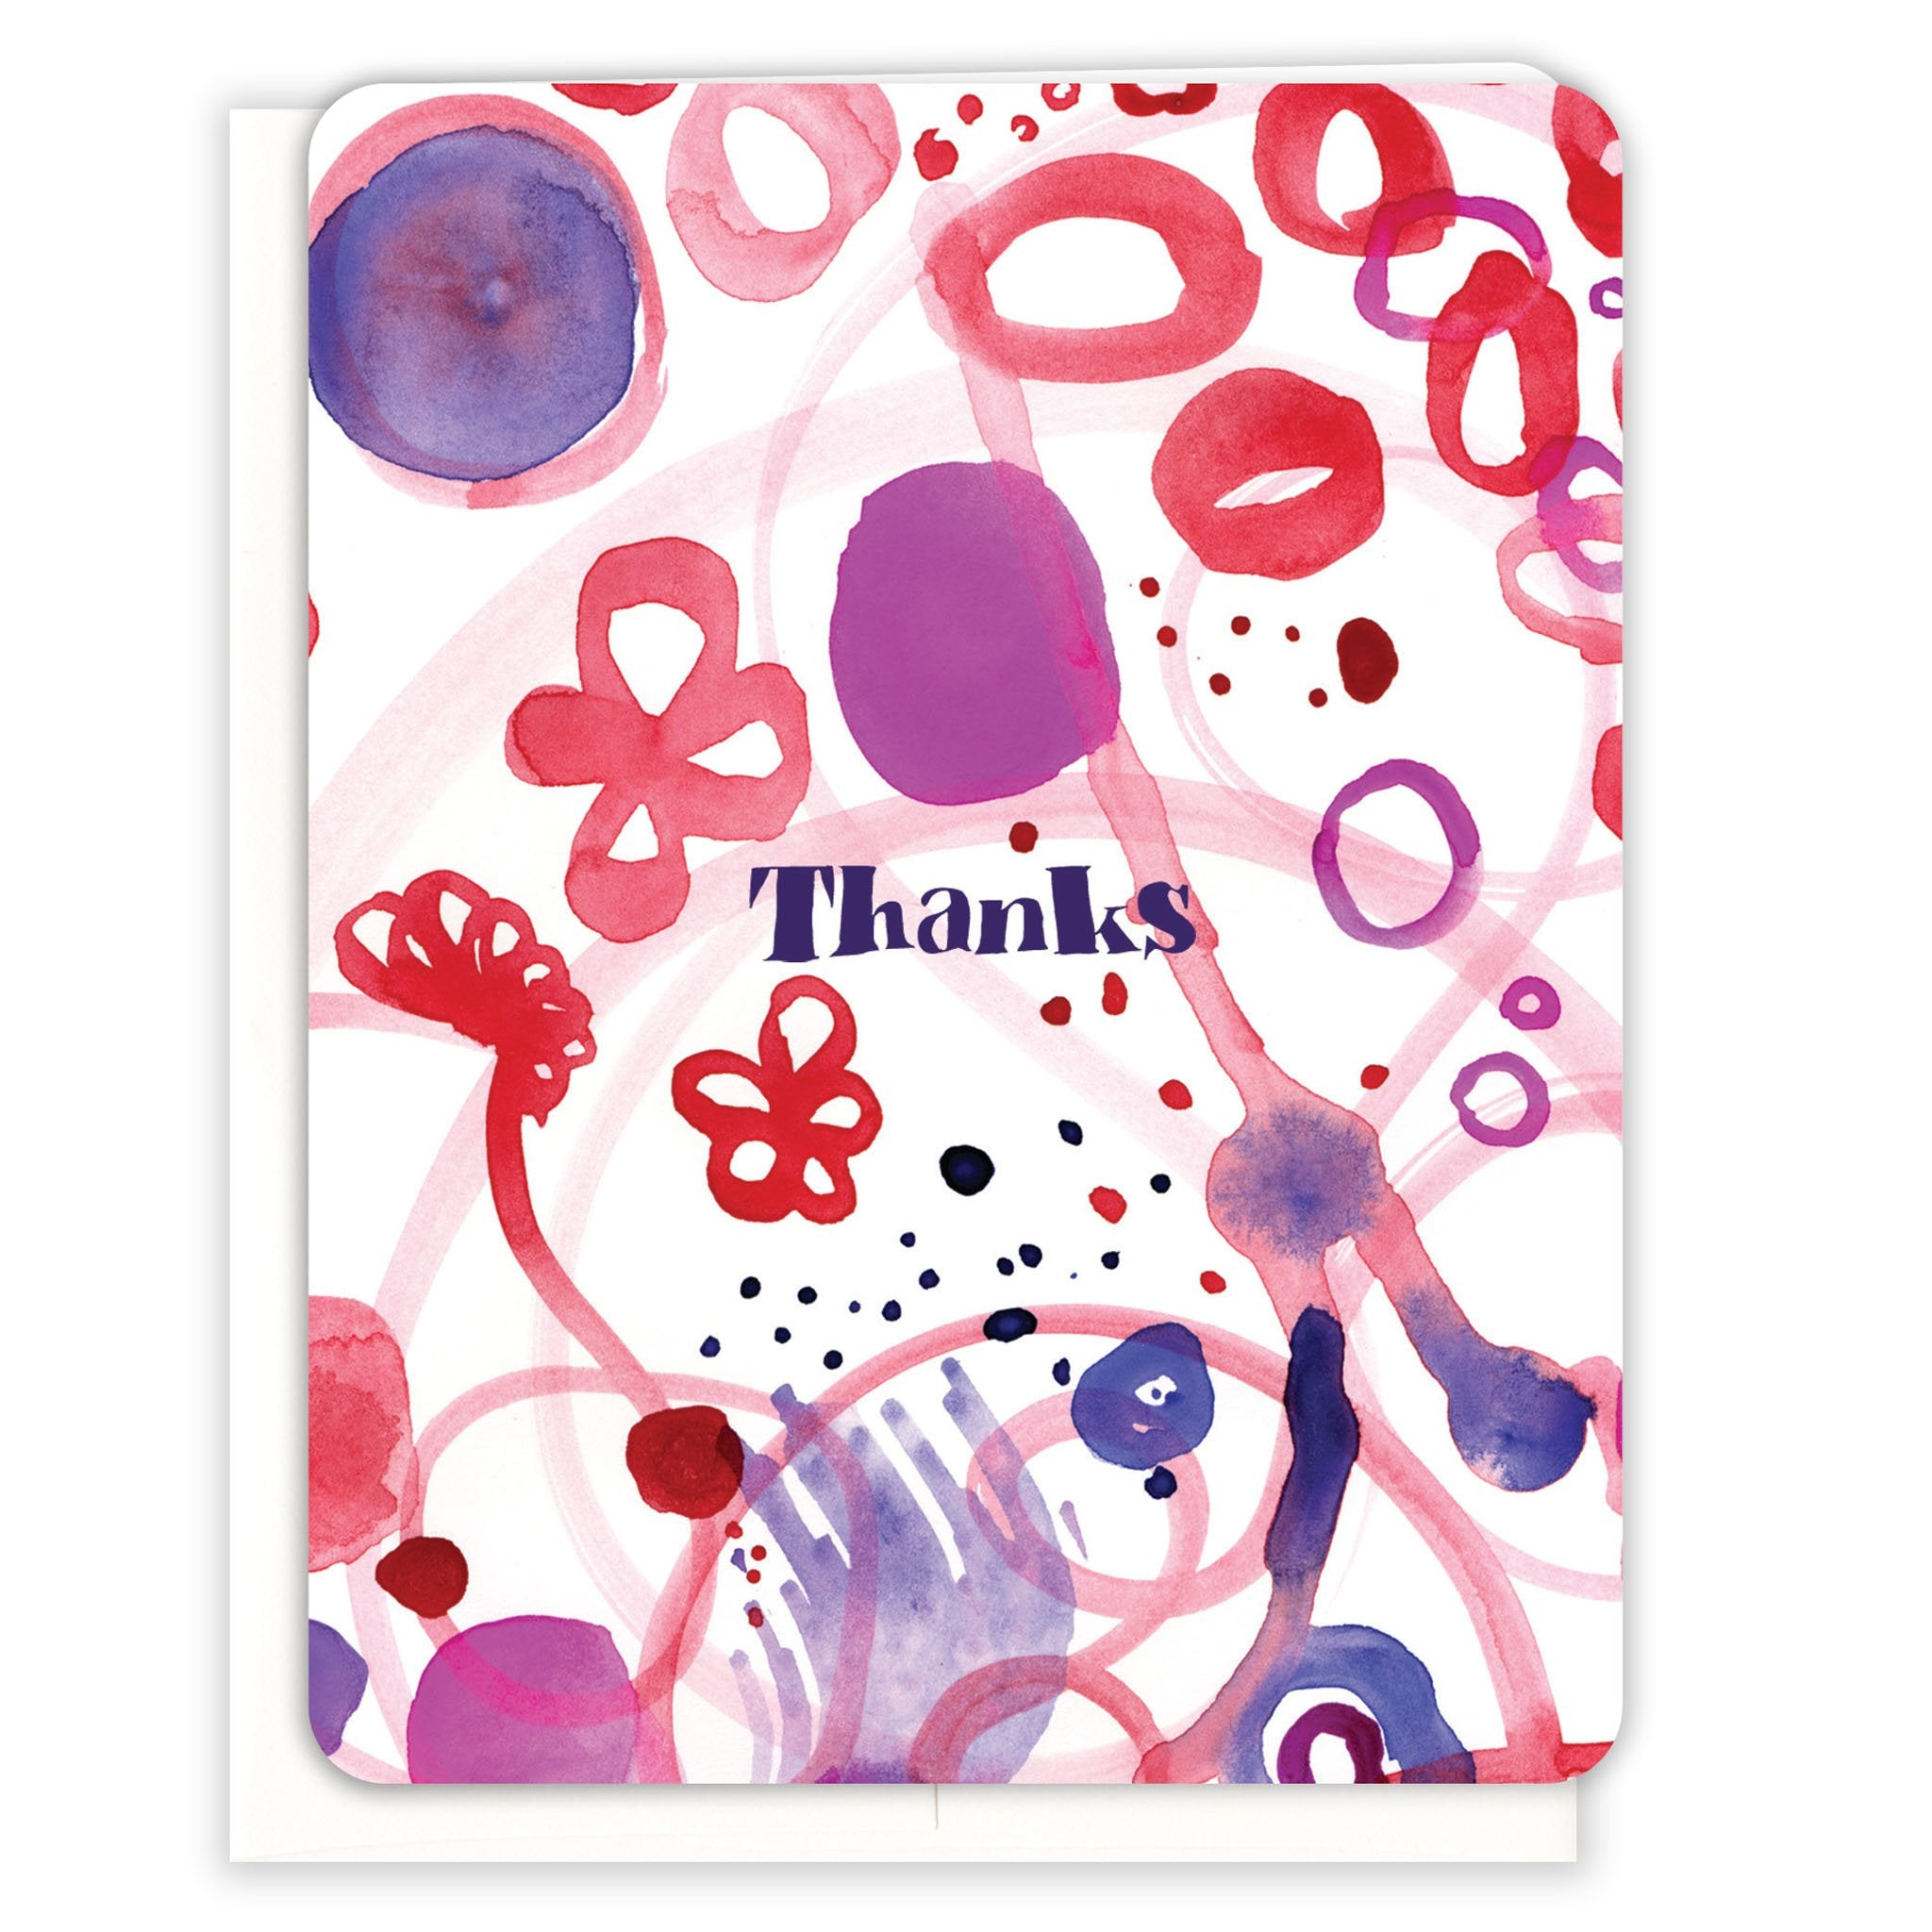 Red-Flowers-Thanks-Thank-You-Card